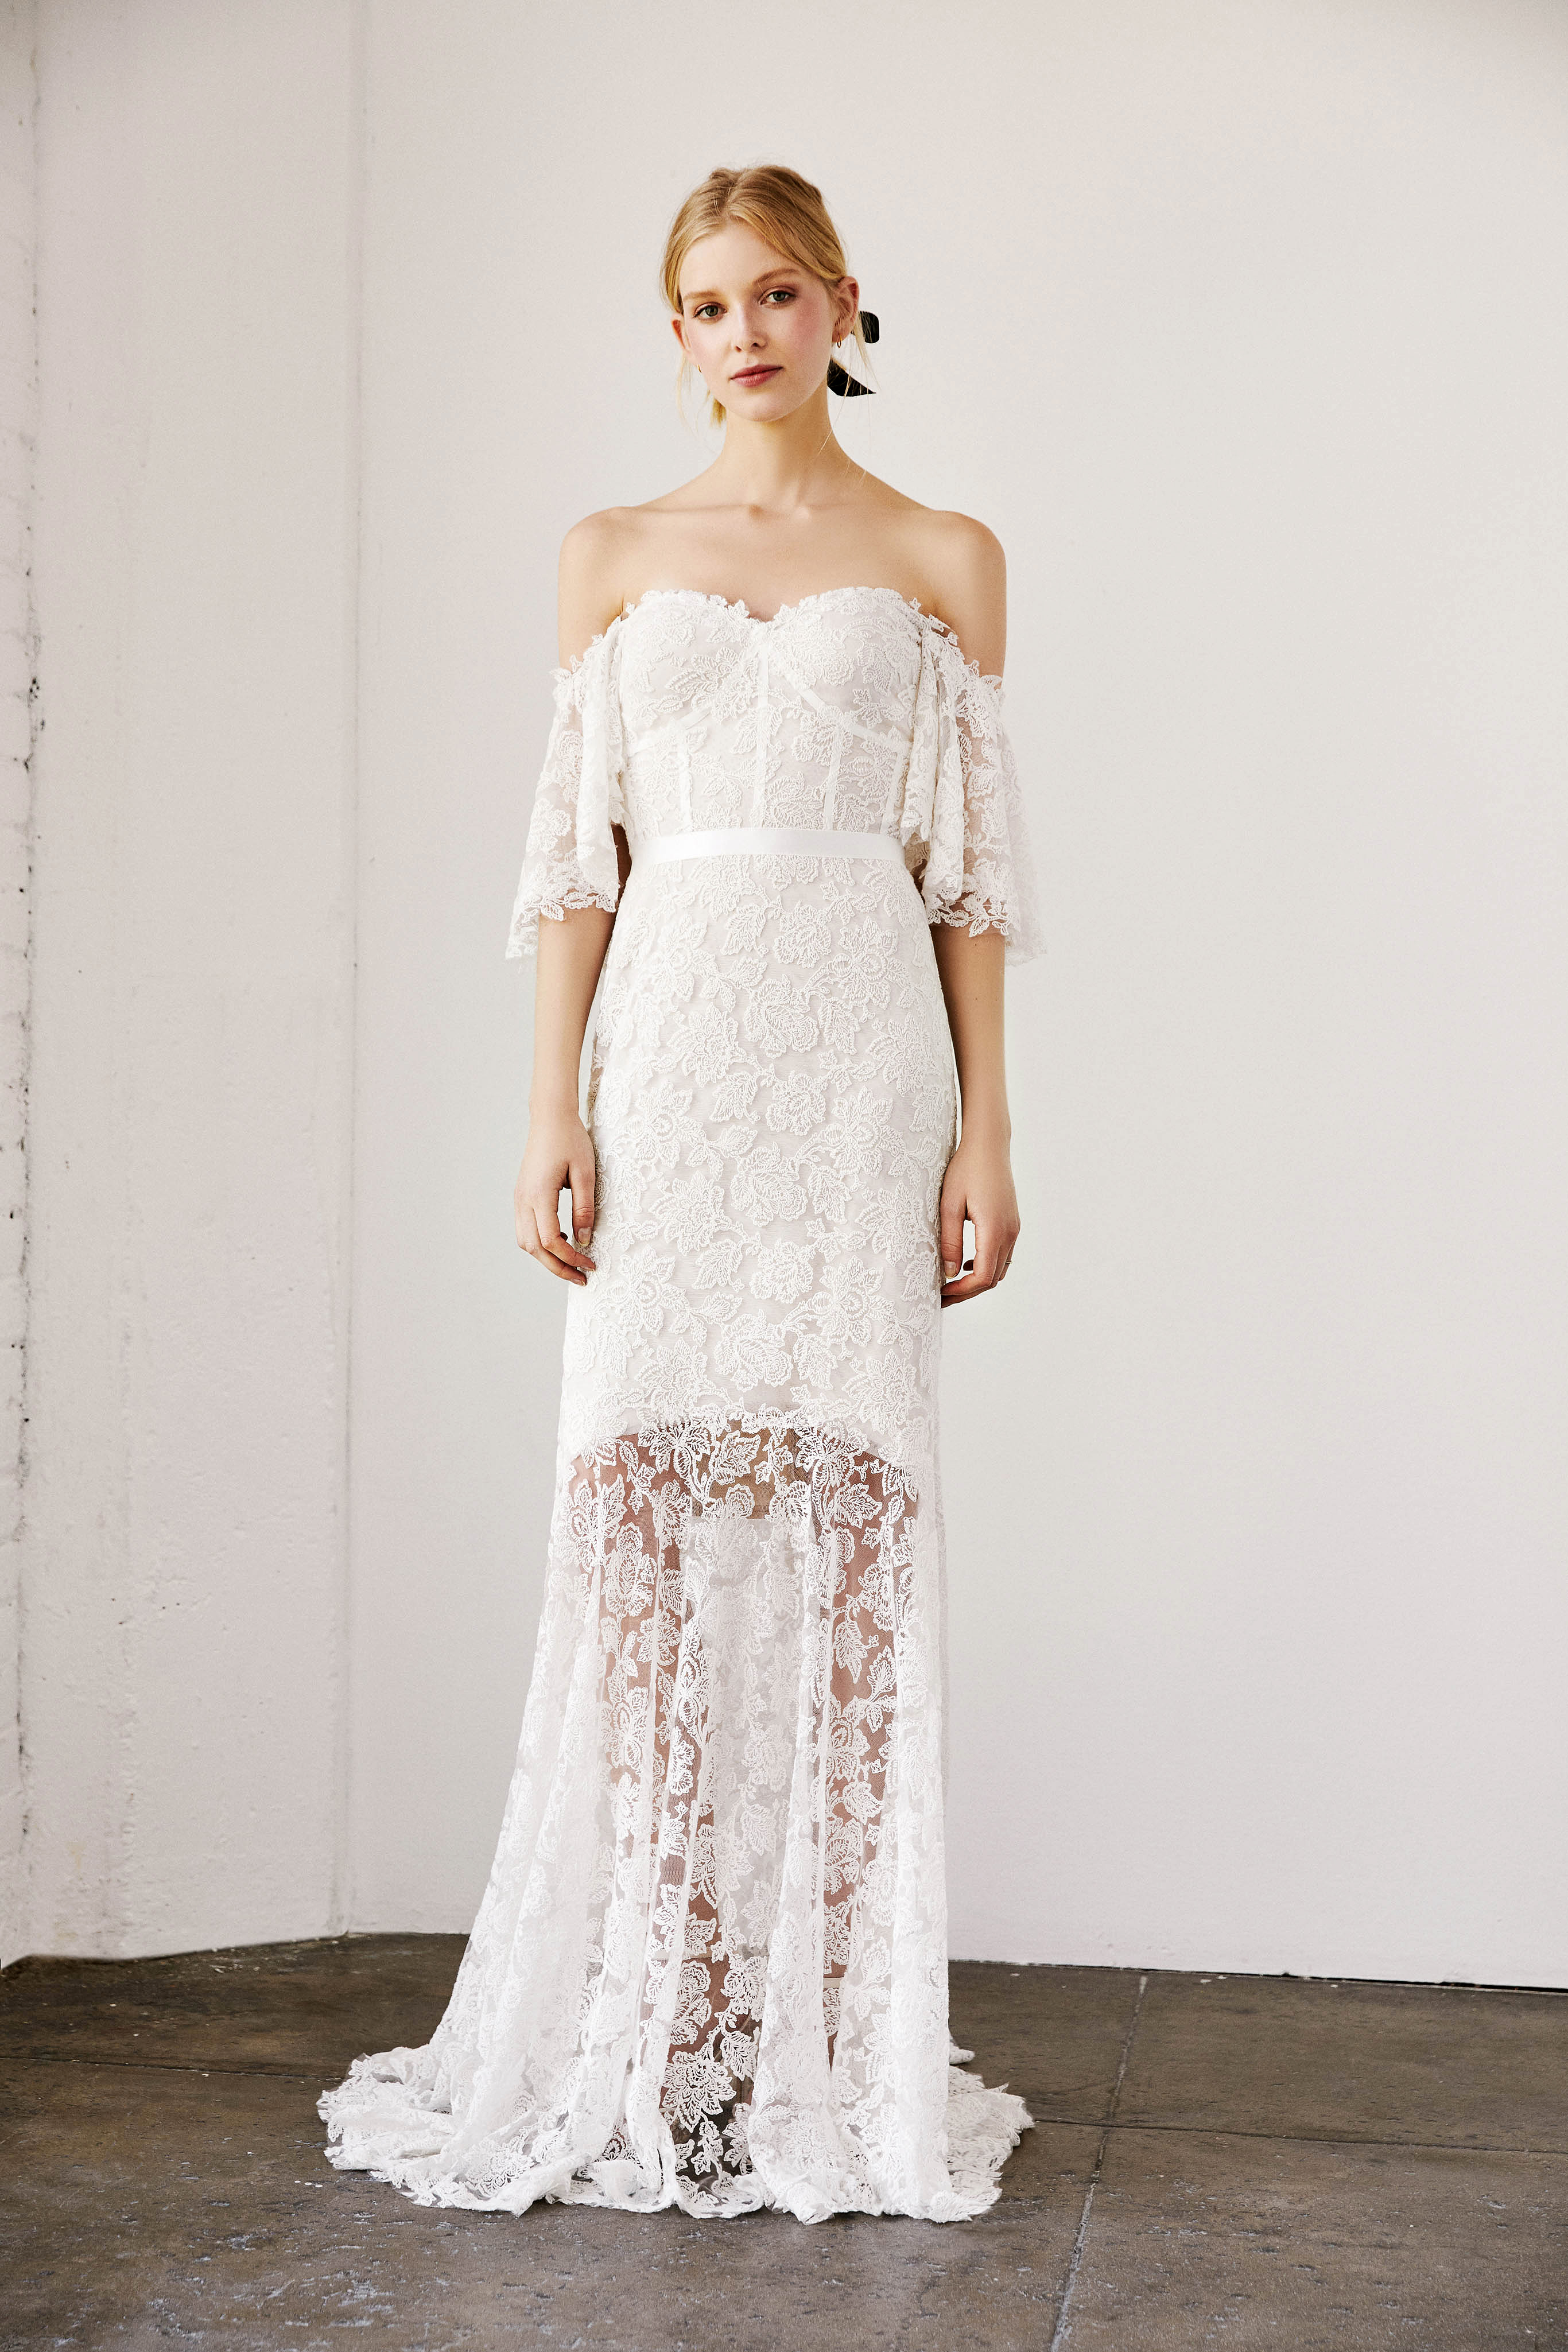 tadashi shoji wedding dress spring 2019 off the shoulder lace elbow length sleeves